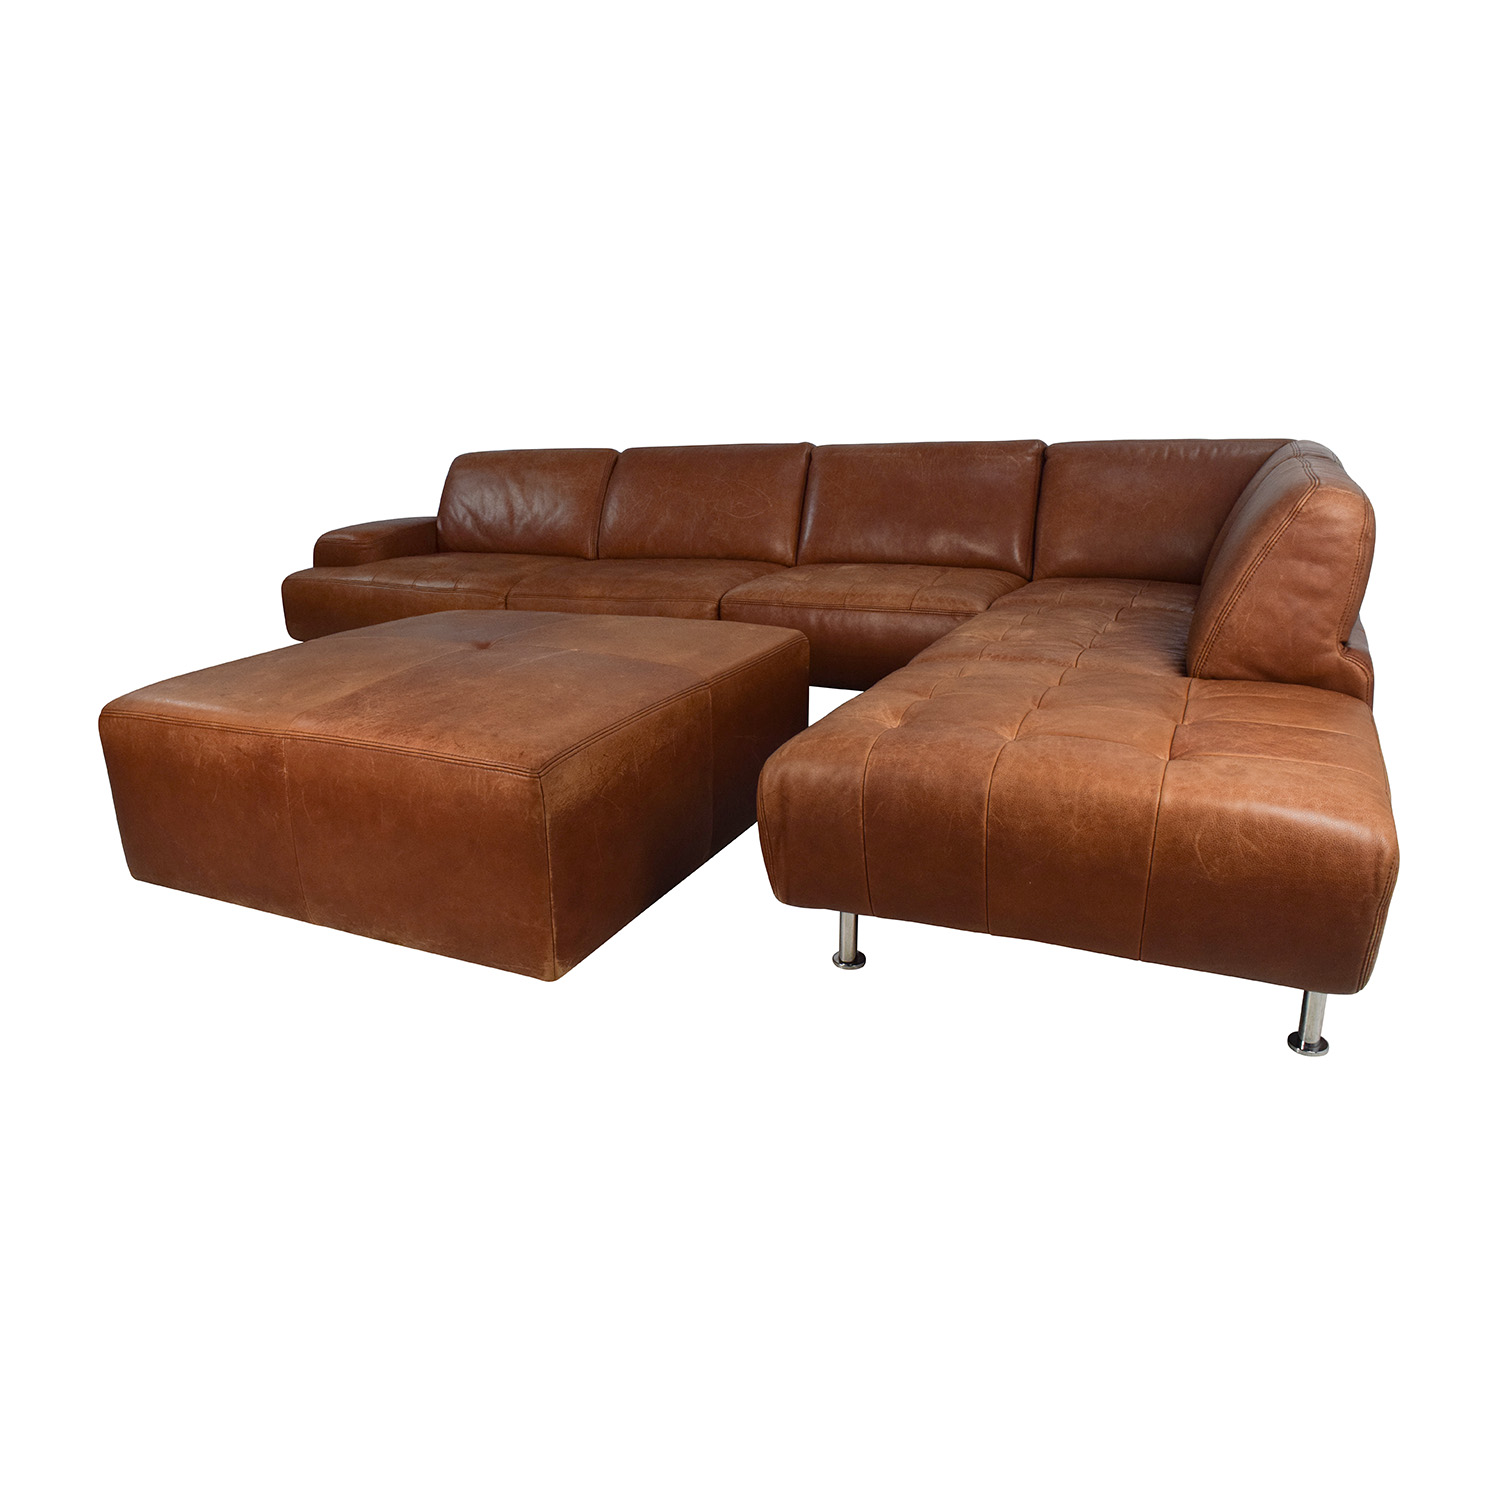 Wschillig 53 Off W Schillig W Schillig Leather Sectional And